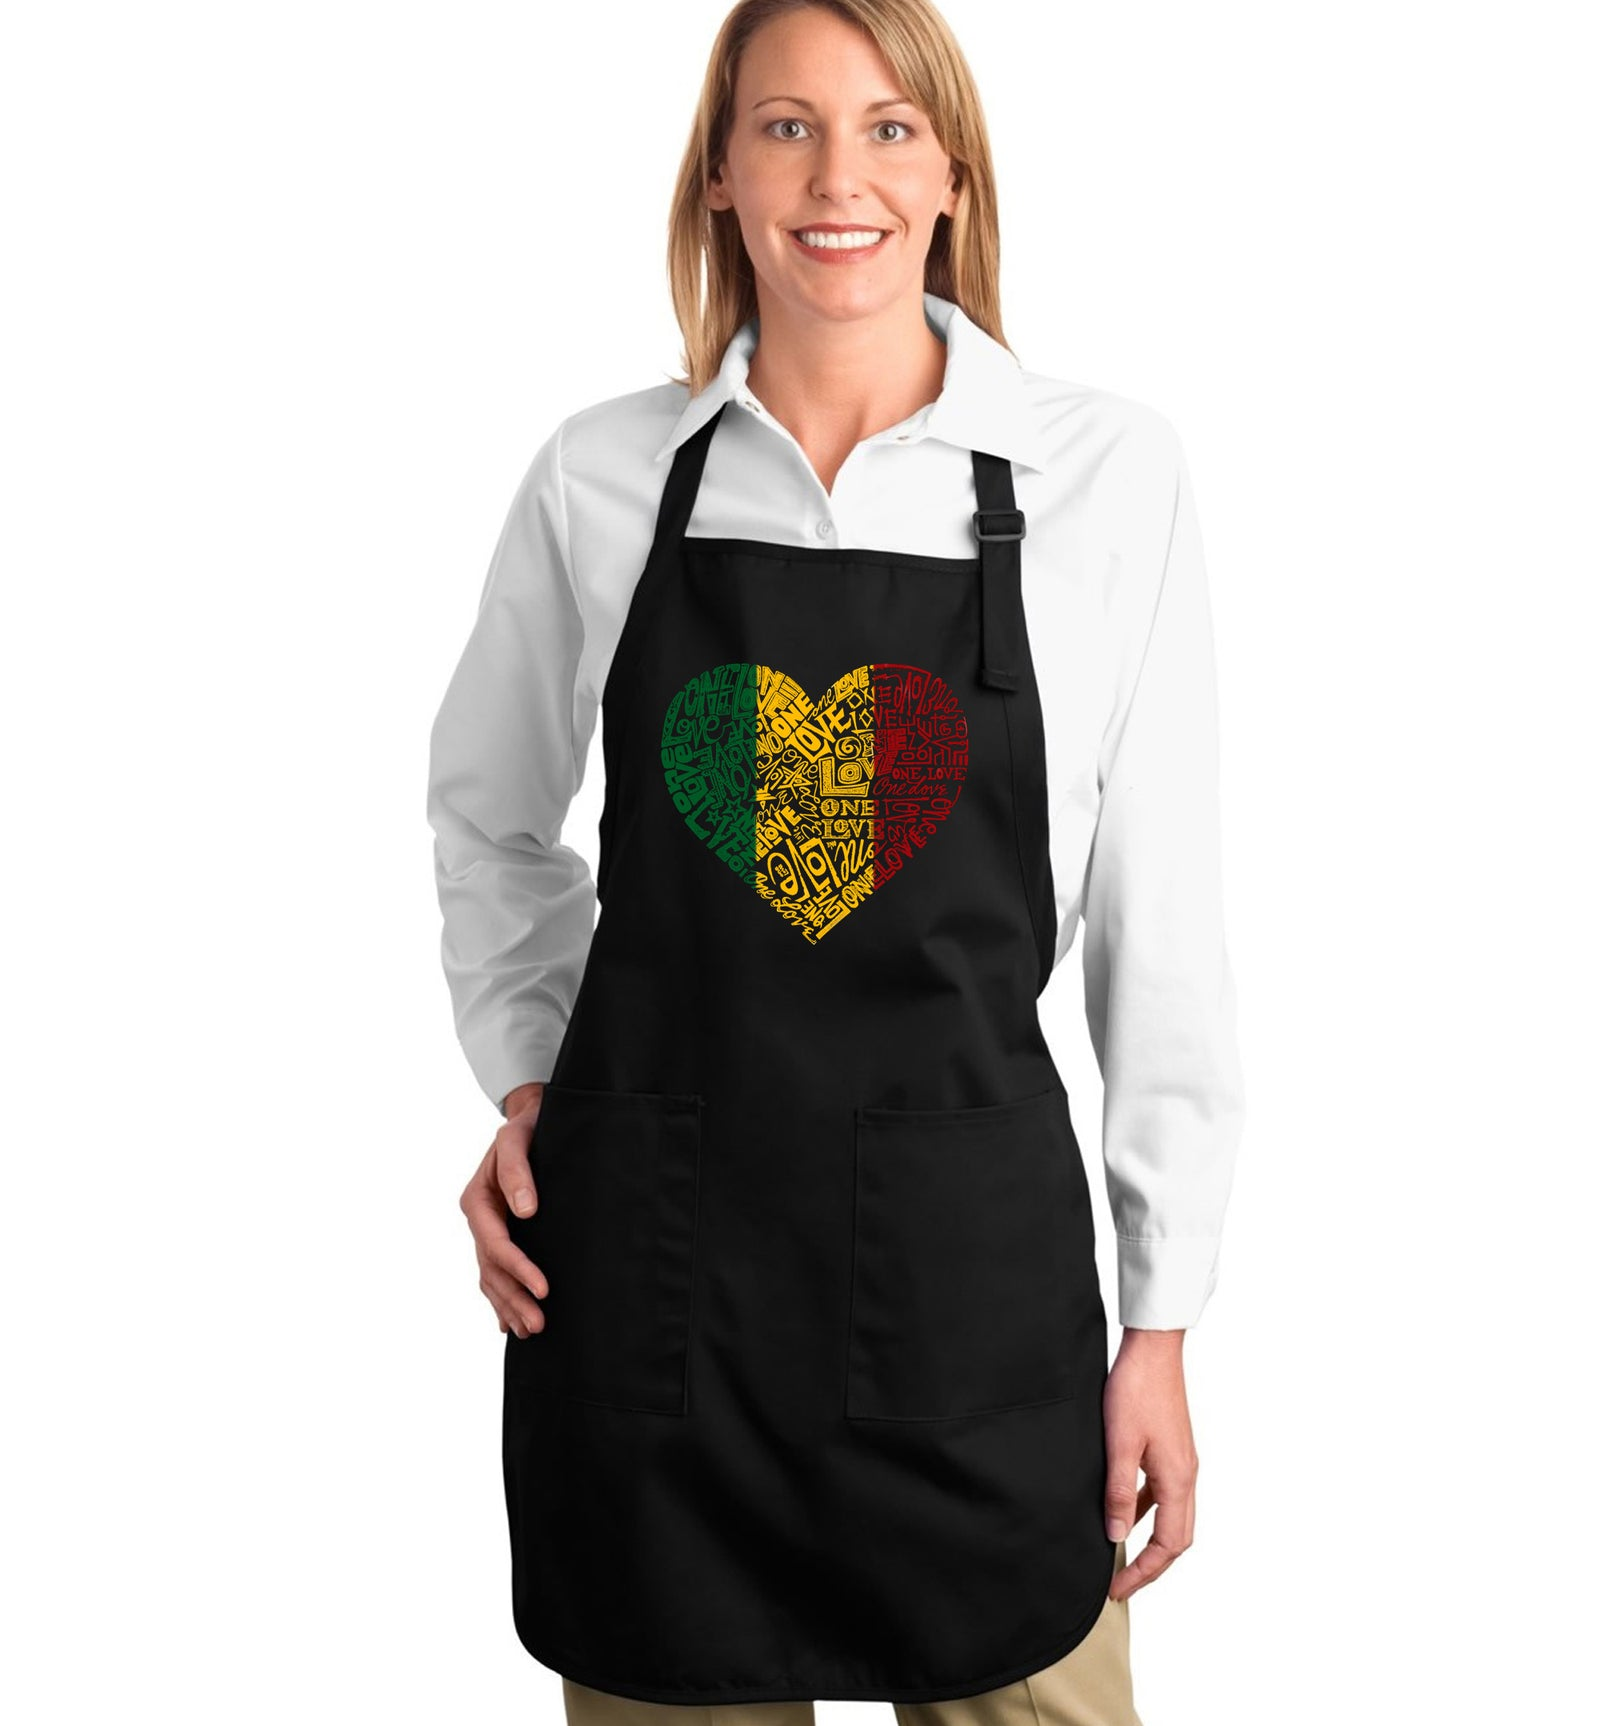 Los Angeles Pop Art Full Length Apron - One Love Heart